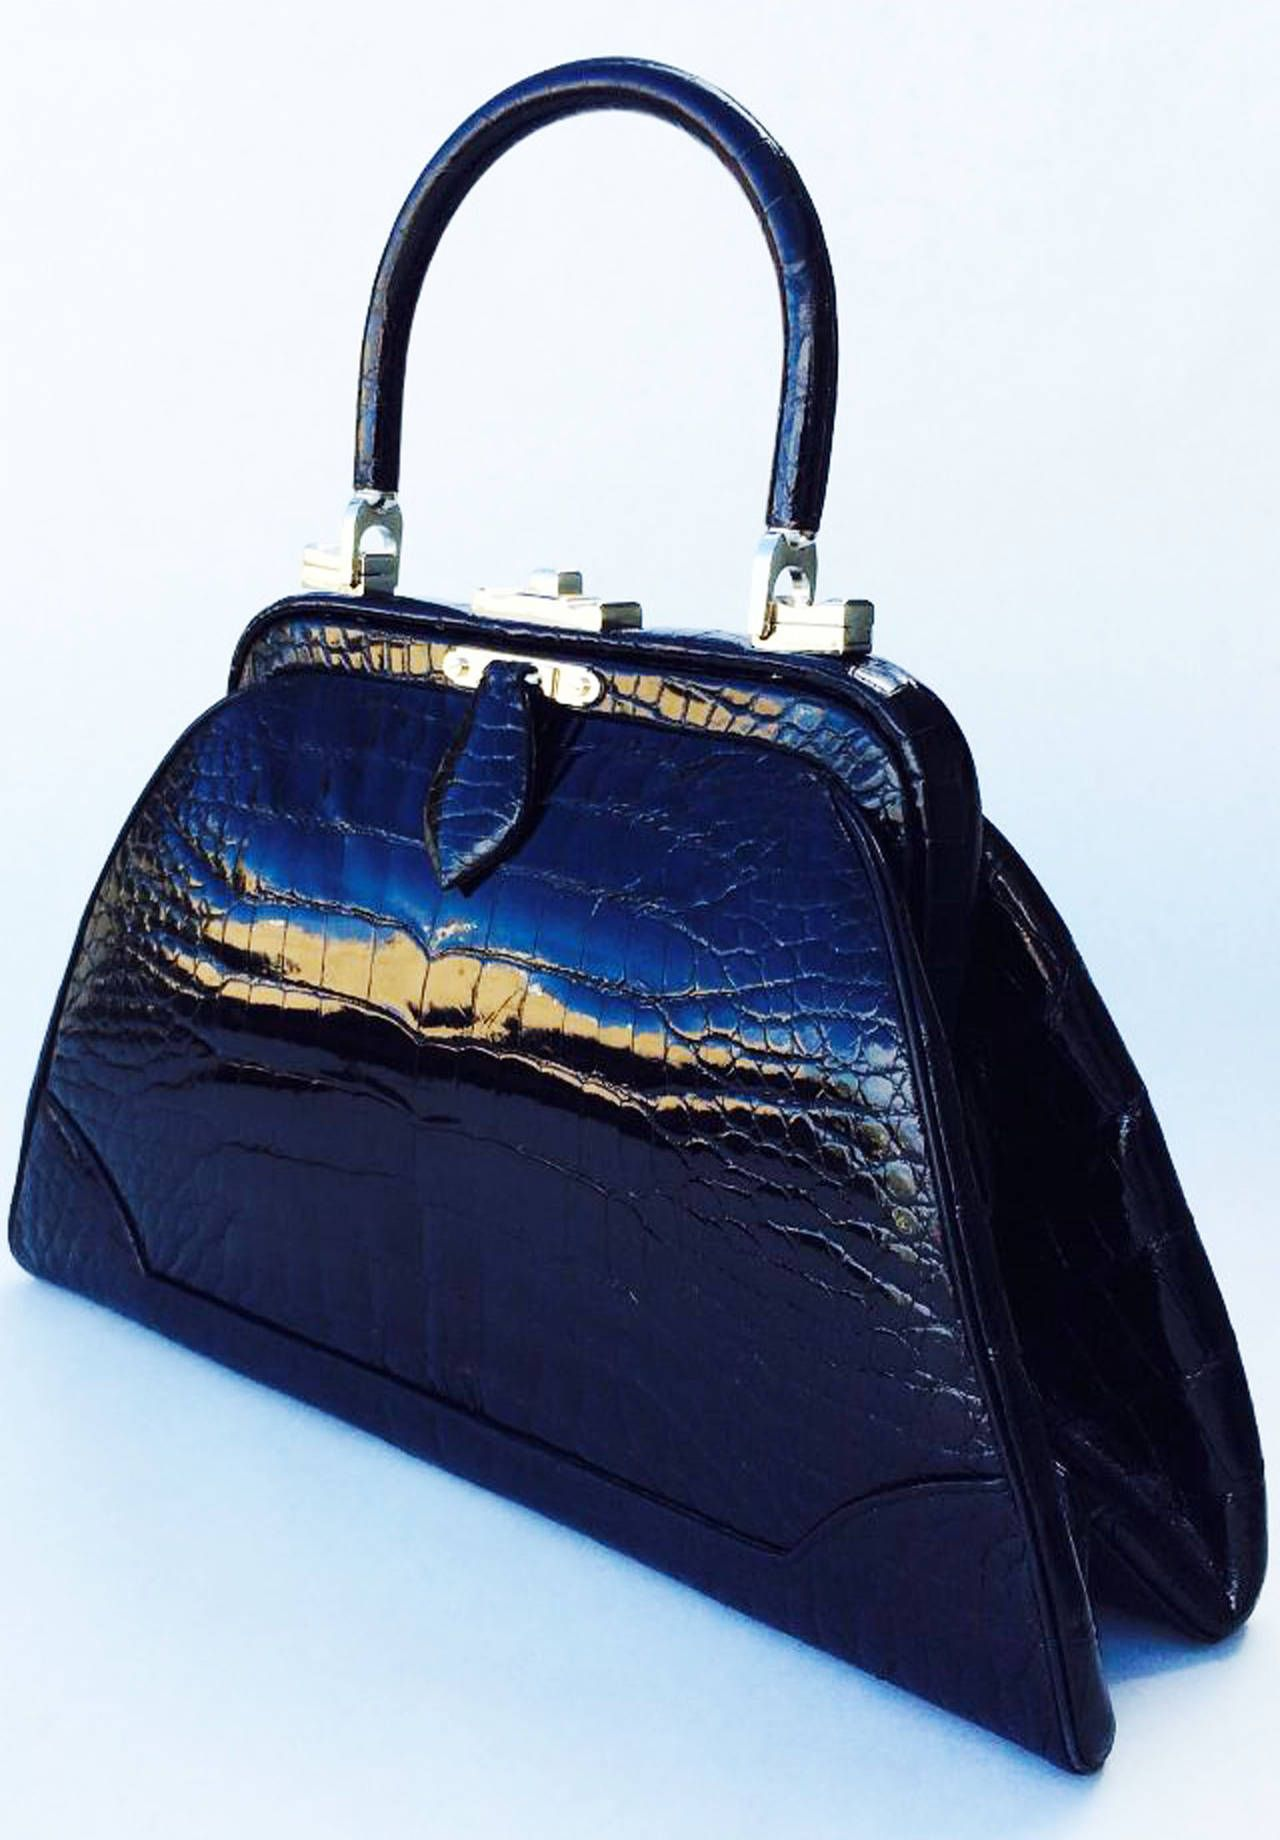 fe0fd12b0bc810 Judith Leiber Porosus Crocodile Handbag 1970s | From a collection of rare vintage  handbags and purses